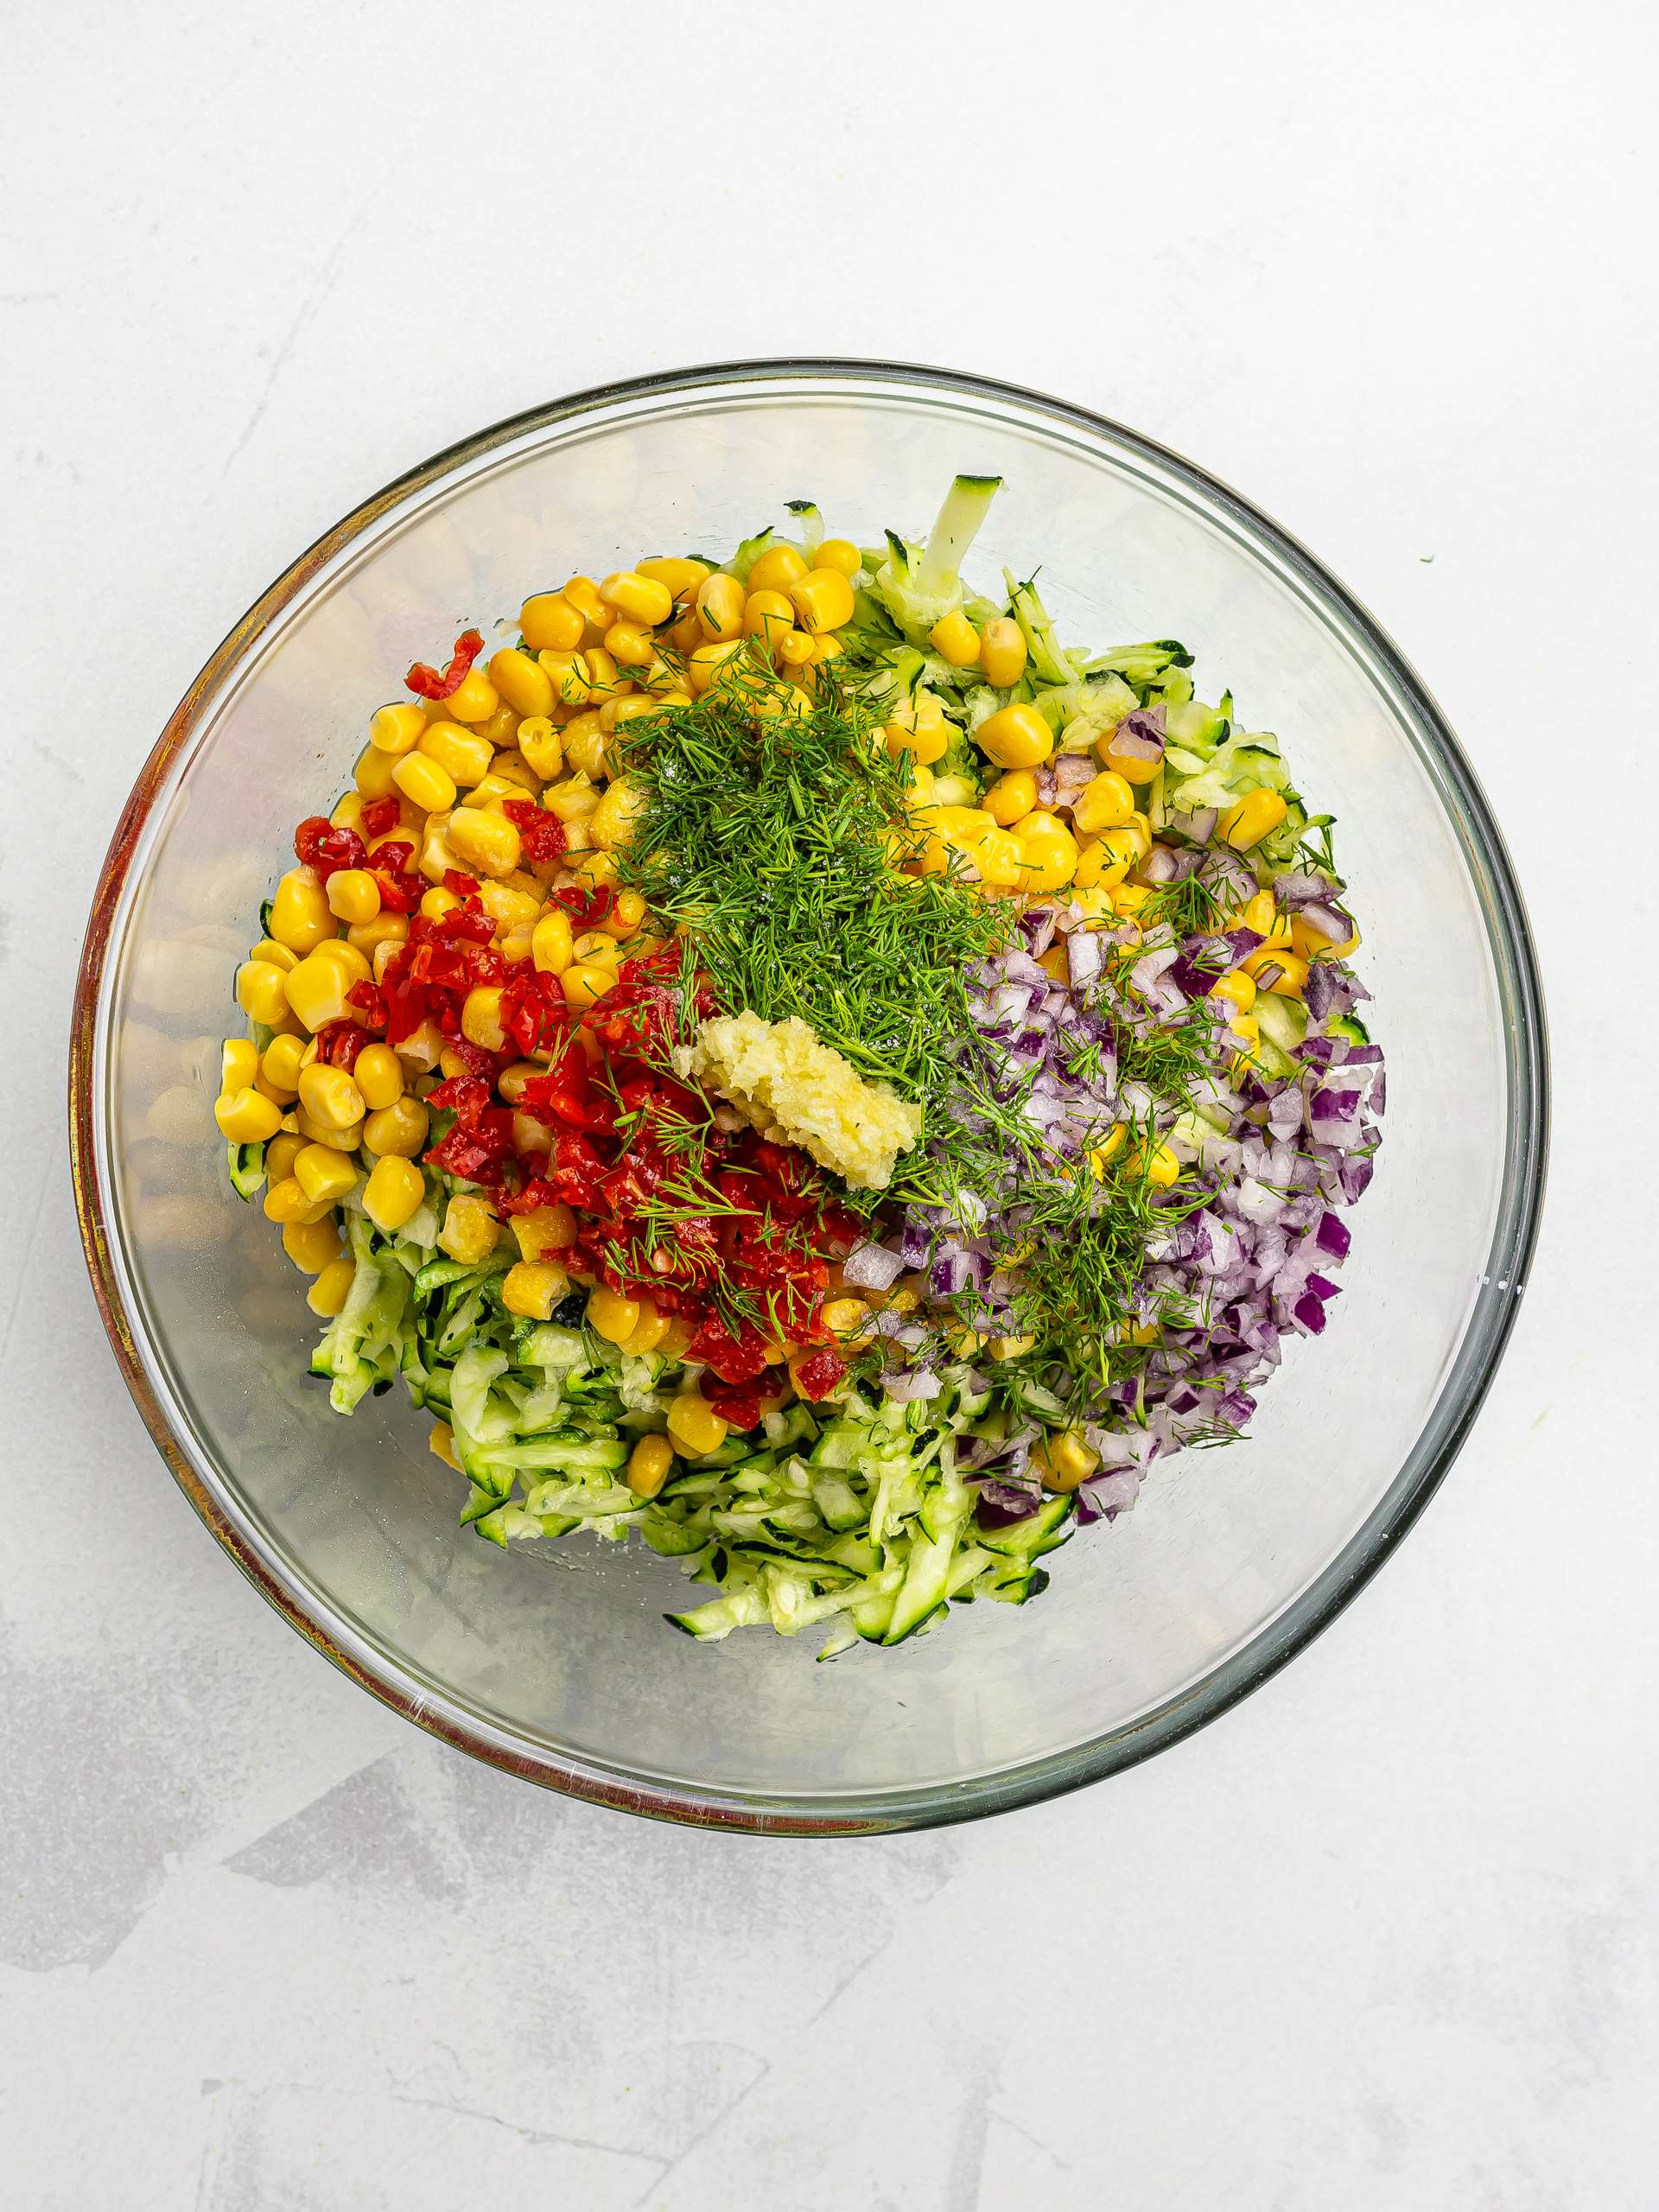 courgette and corn fritters ingredients in a bowl